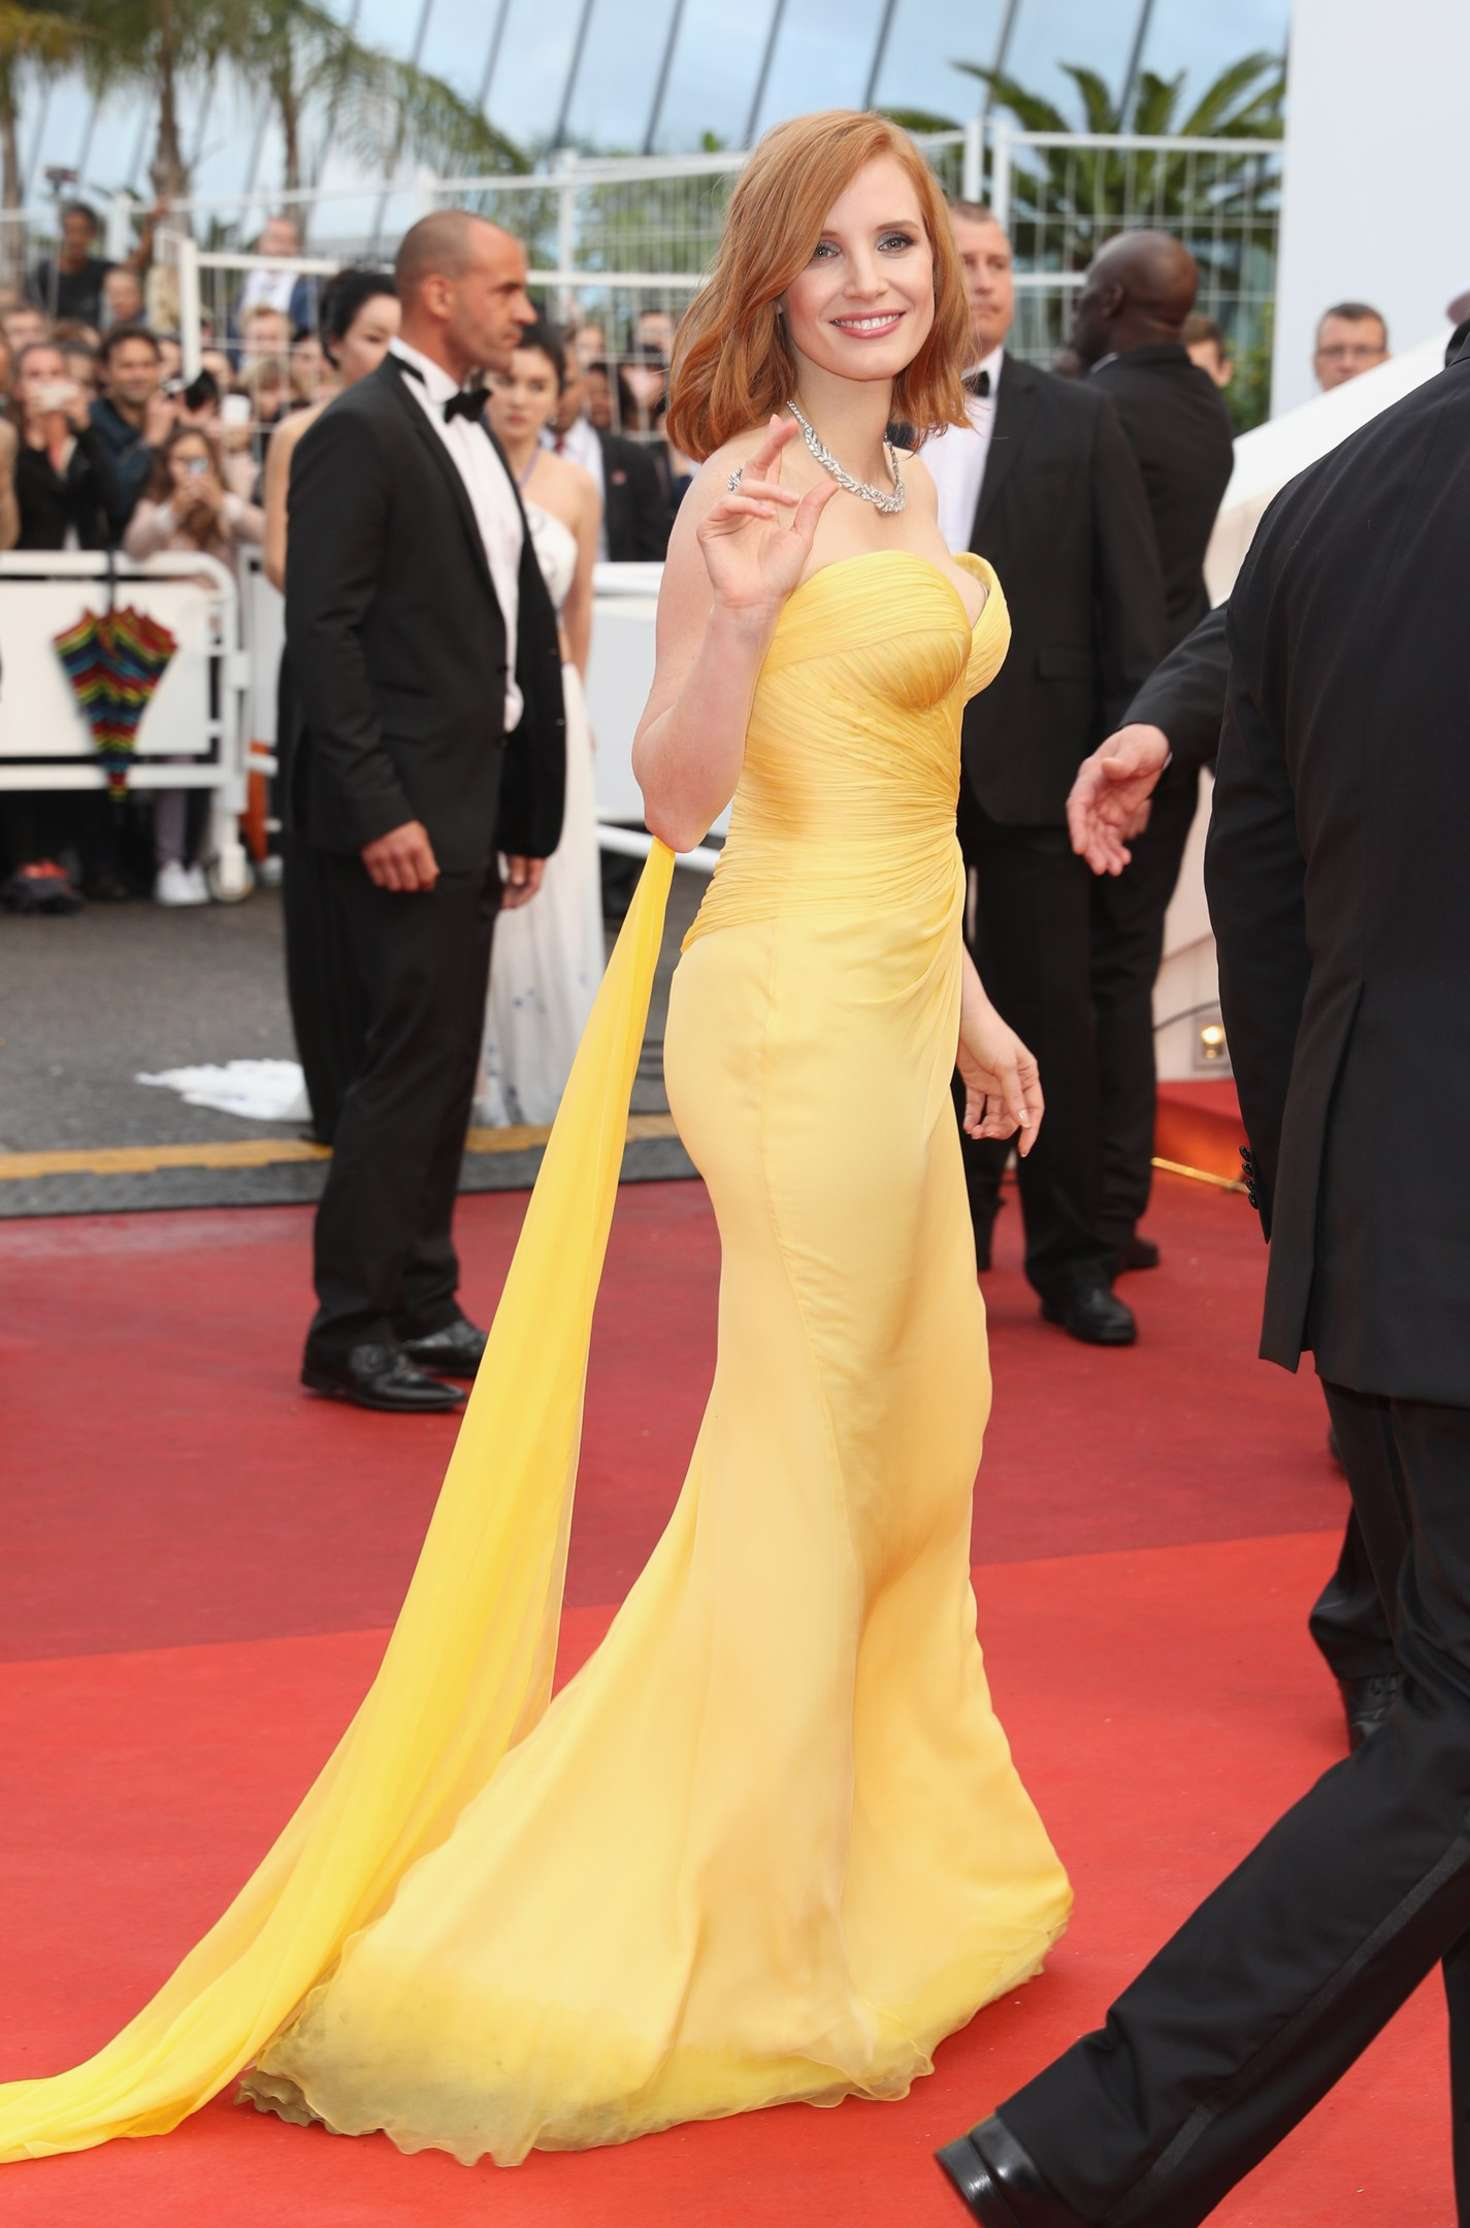 http://www.theplace.ru/archive/jessica_chastain/img/jessica_chastain_cafe_society_opening_gala_at_2016_cannes_film_festival_06.jpg